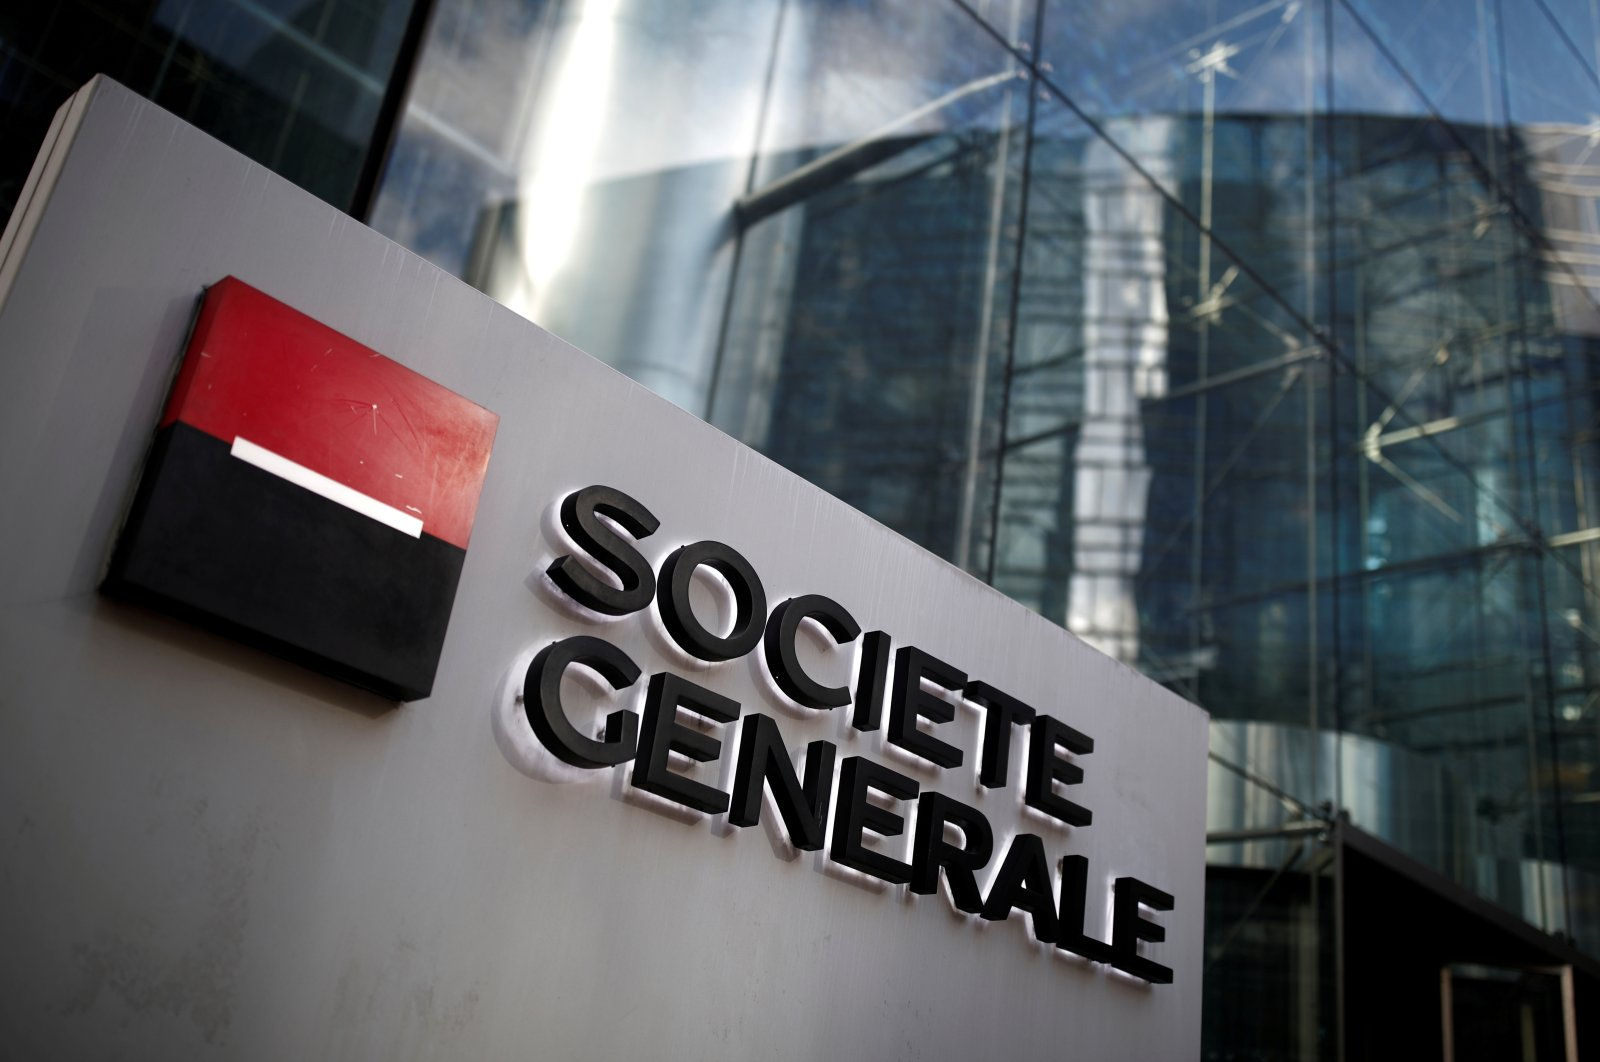 The logo of Societe Generale at its headquarters in the financial and business district of La Defense near Paris, France, Feb. 4, 2020. (Reuters Photo)